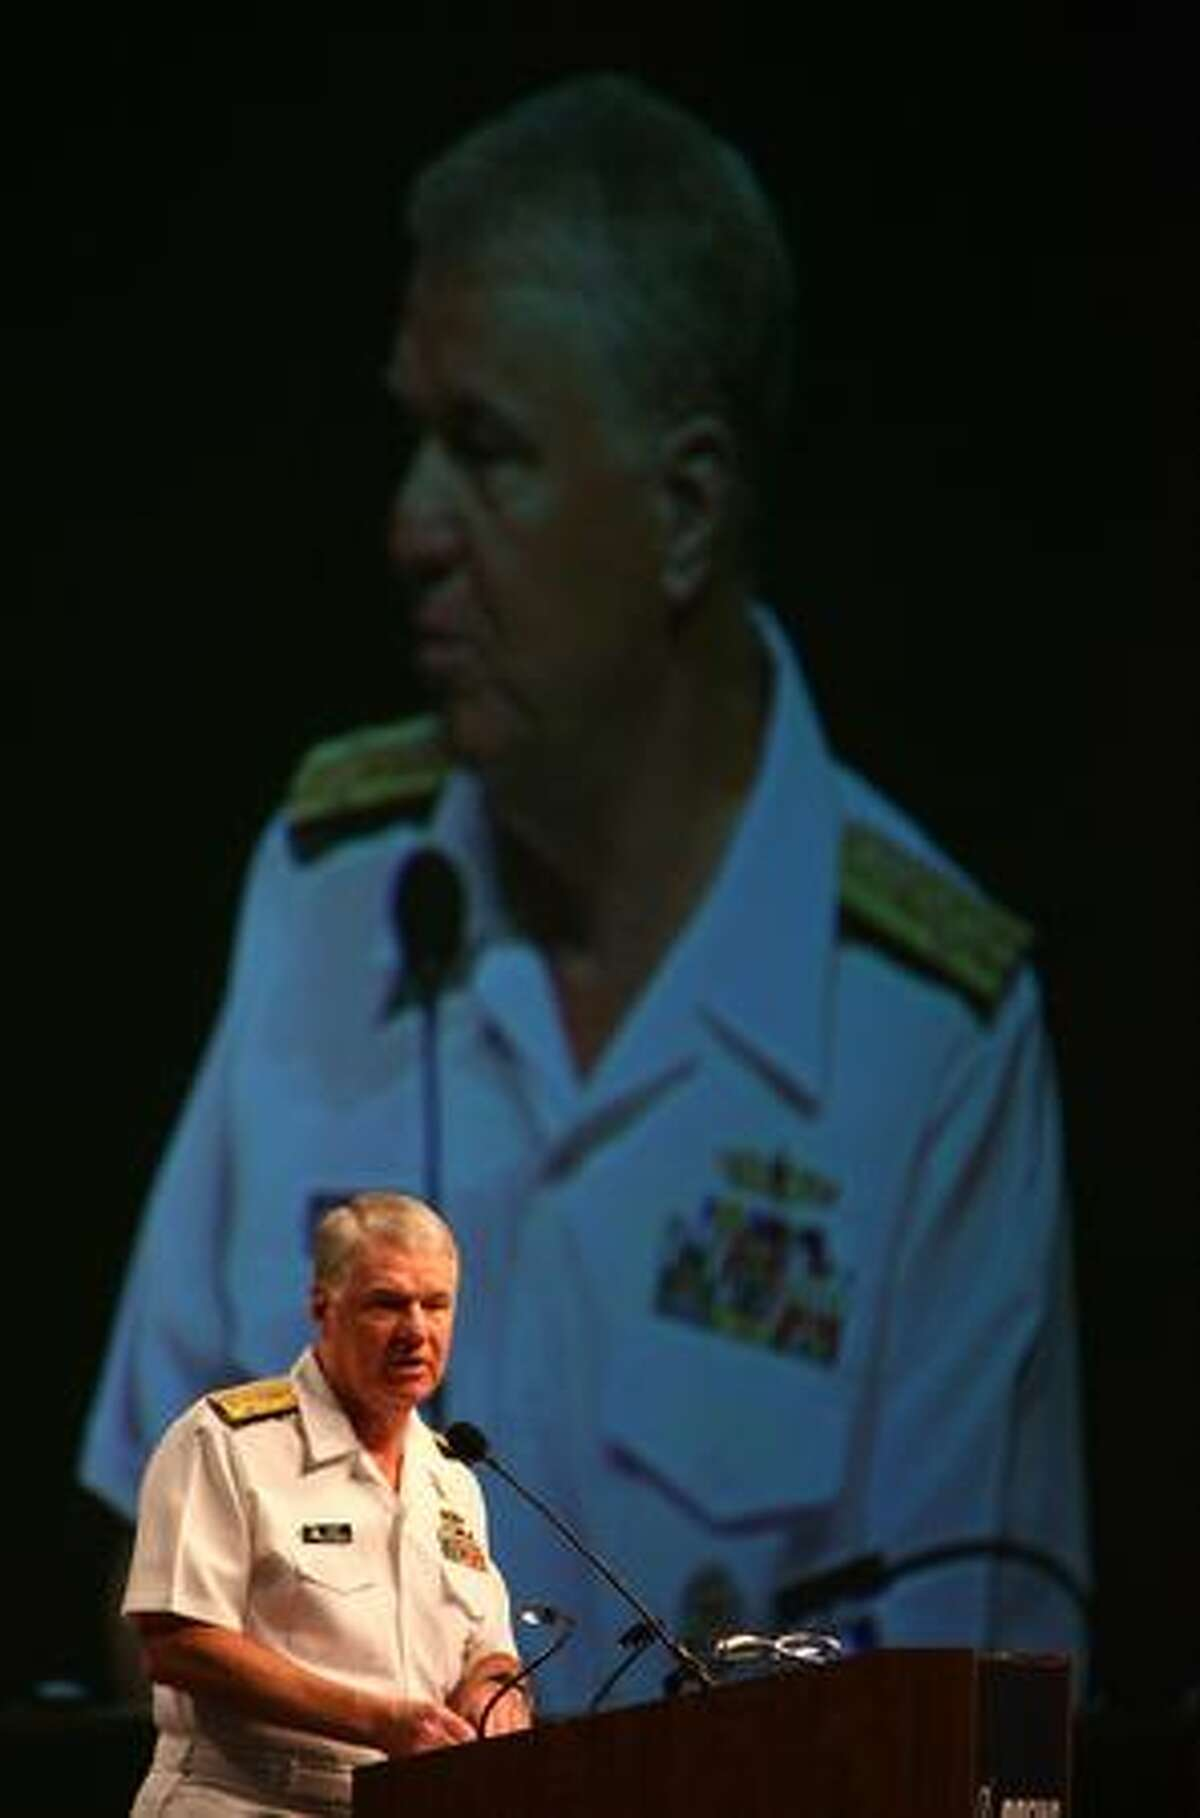 Adm. Gary Roughead, chief of Navy operations, speaks during the rollout ceremony for the new Boeing P-8A Poseidon at the Boeing plant in Renton. The P-8A Poseidon is a long-range, anti-submarine warfare, anti-surface warfare, intelligence, surveillance and reconnaissance aircraft.